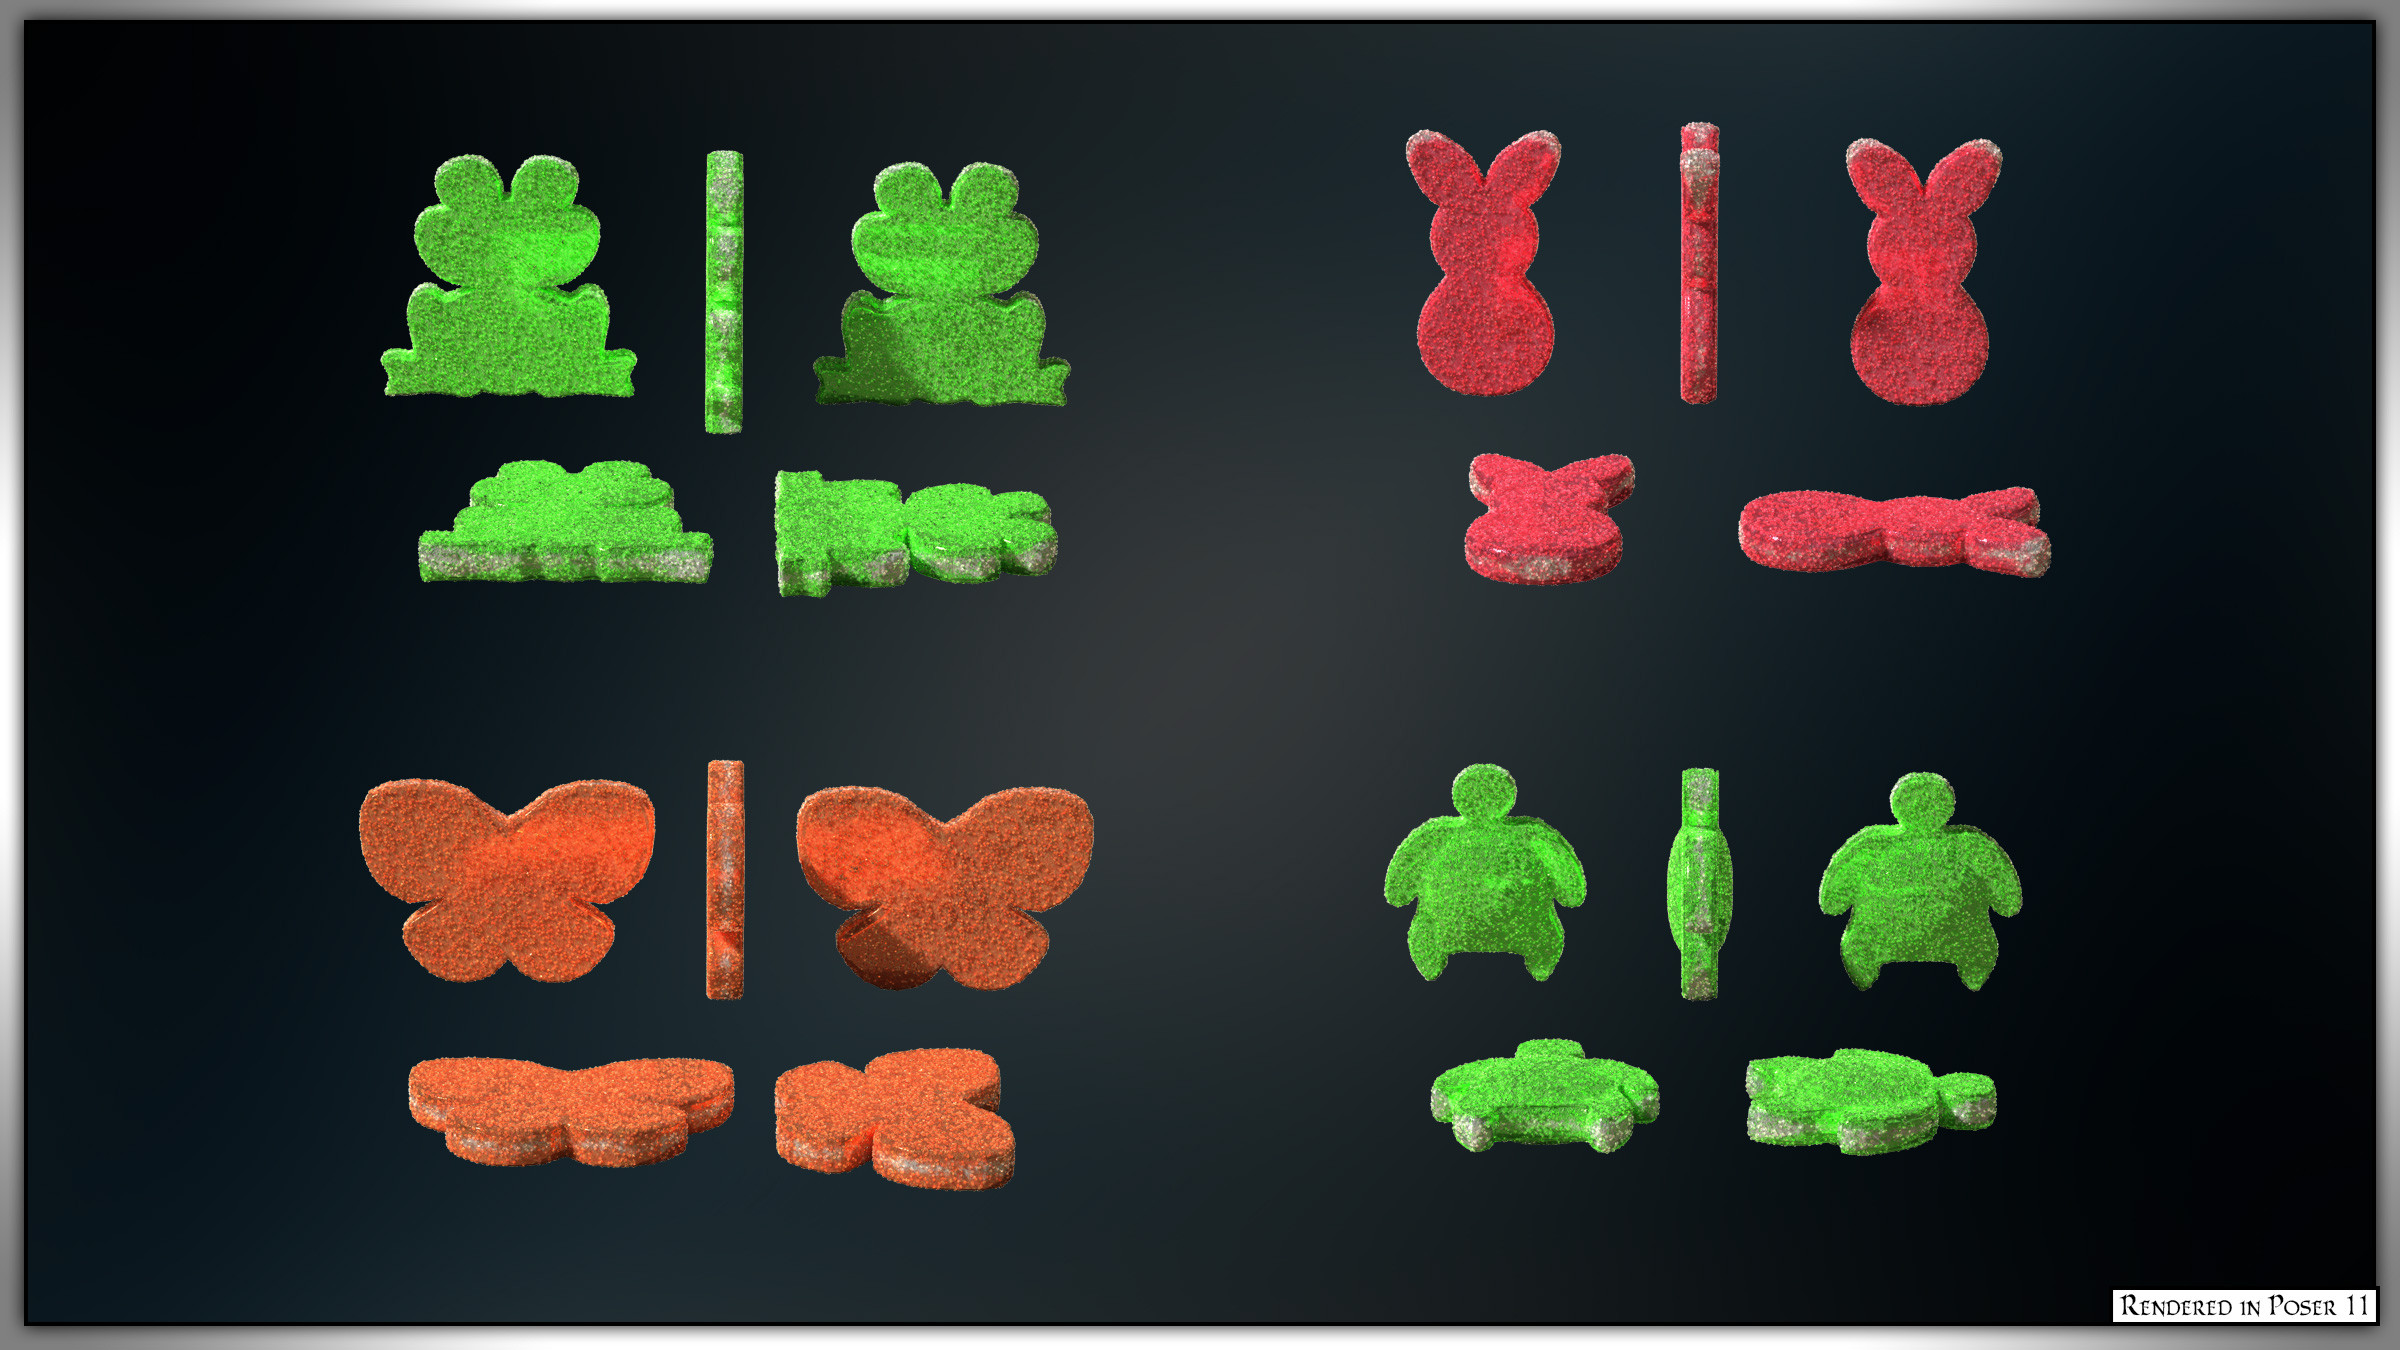 A rotation of each of the candies and colors.